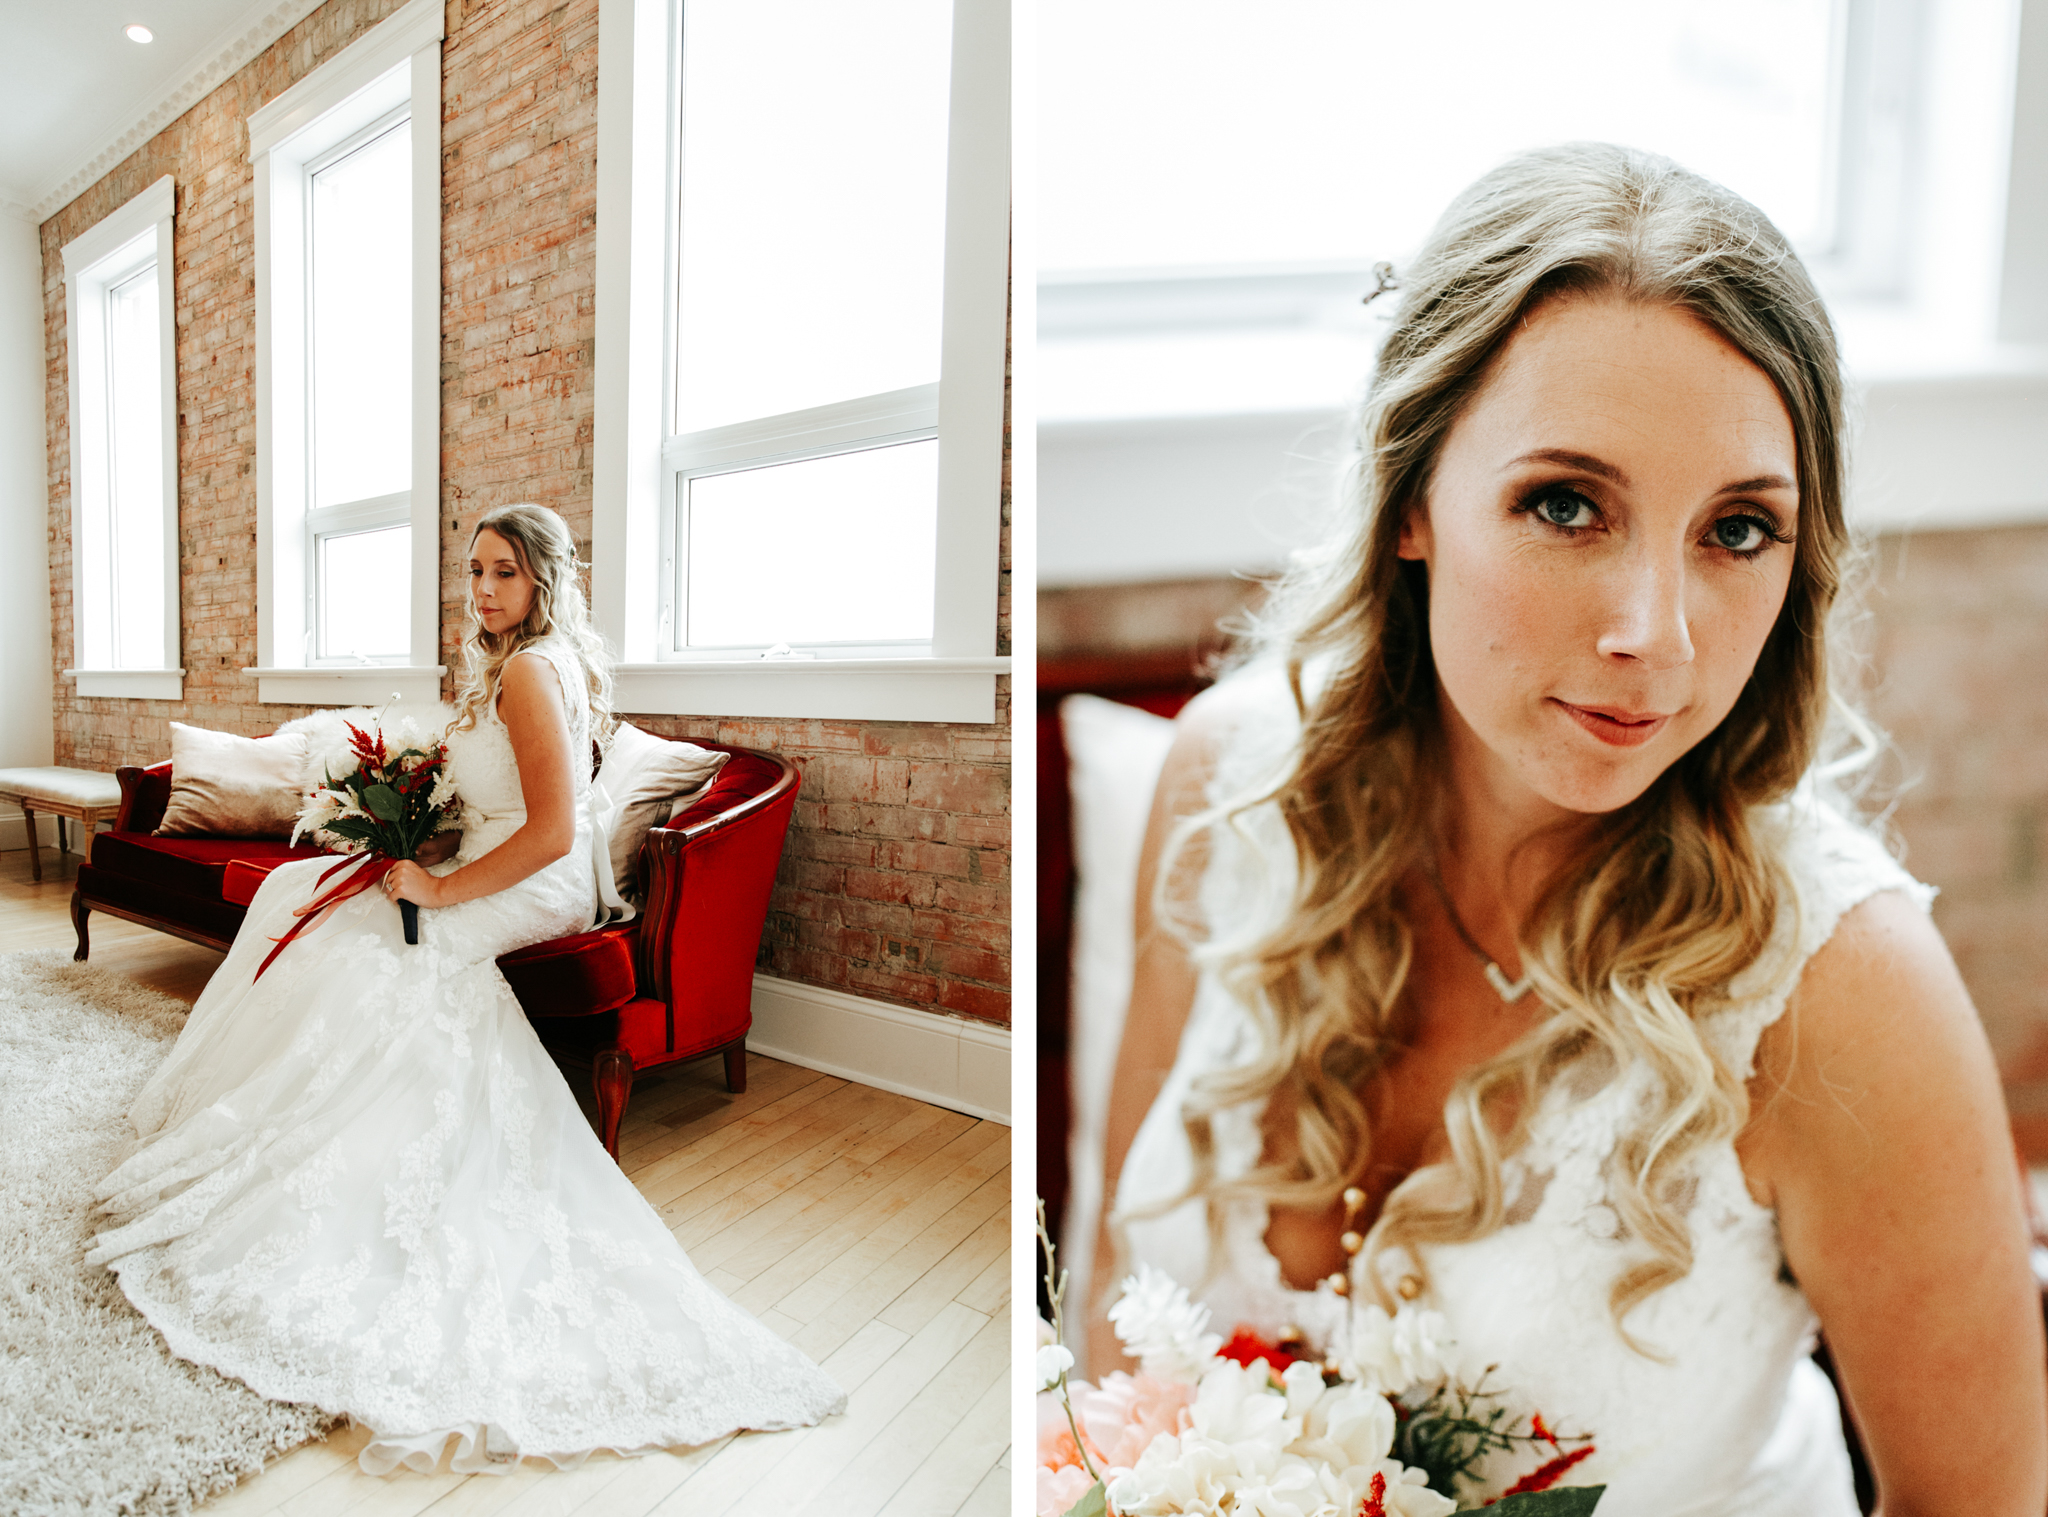 lethbridge-photographer-love-and-be-loved-photography-designed-to-dwell-wedding-katie-kelly-photo-image-picture-203.jpg